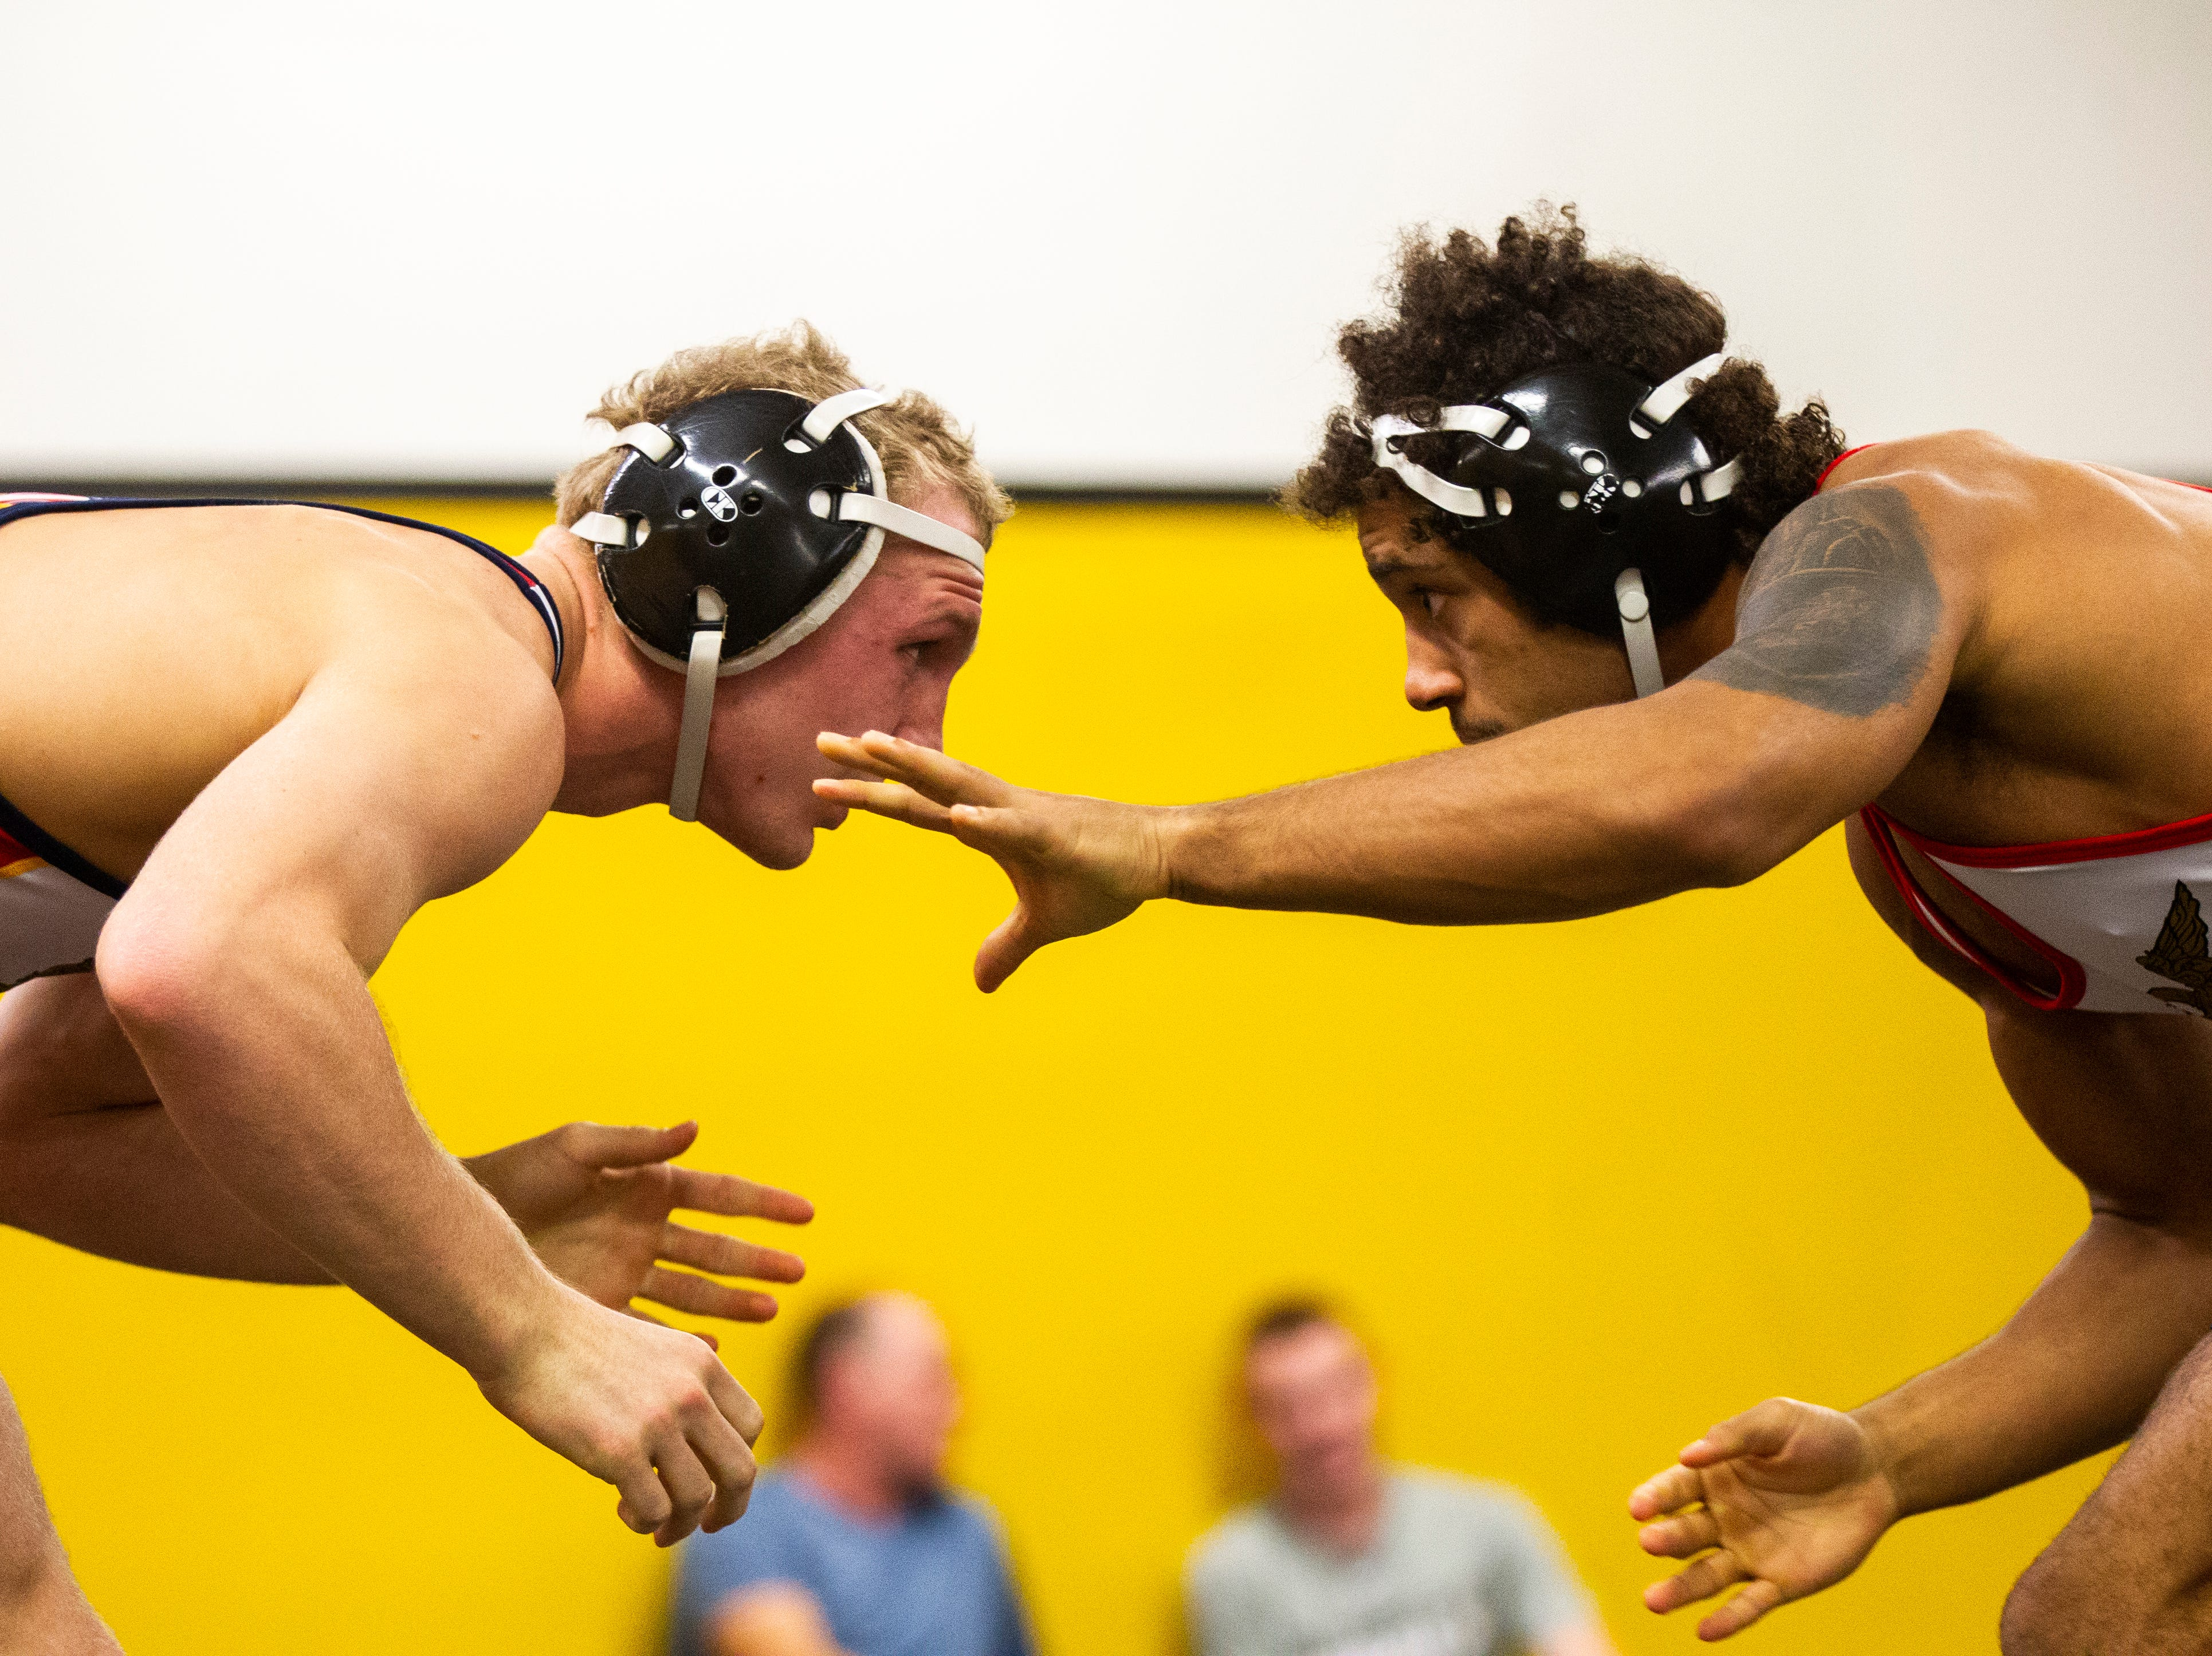 Iowa's Kaleb Young (left) wrestles Jeremiah Moody at 157 during the wrestle-offs on Thursday, Nov. 1, 2018, inside the Dan Gable Wrestling Complex at Carver-Hawkeye Arena in Iowa City.